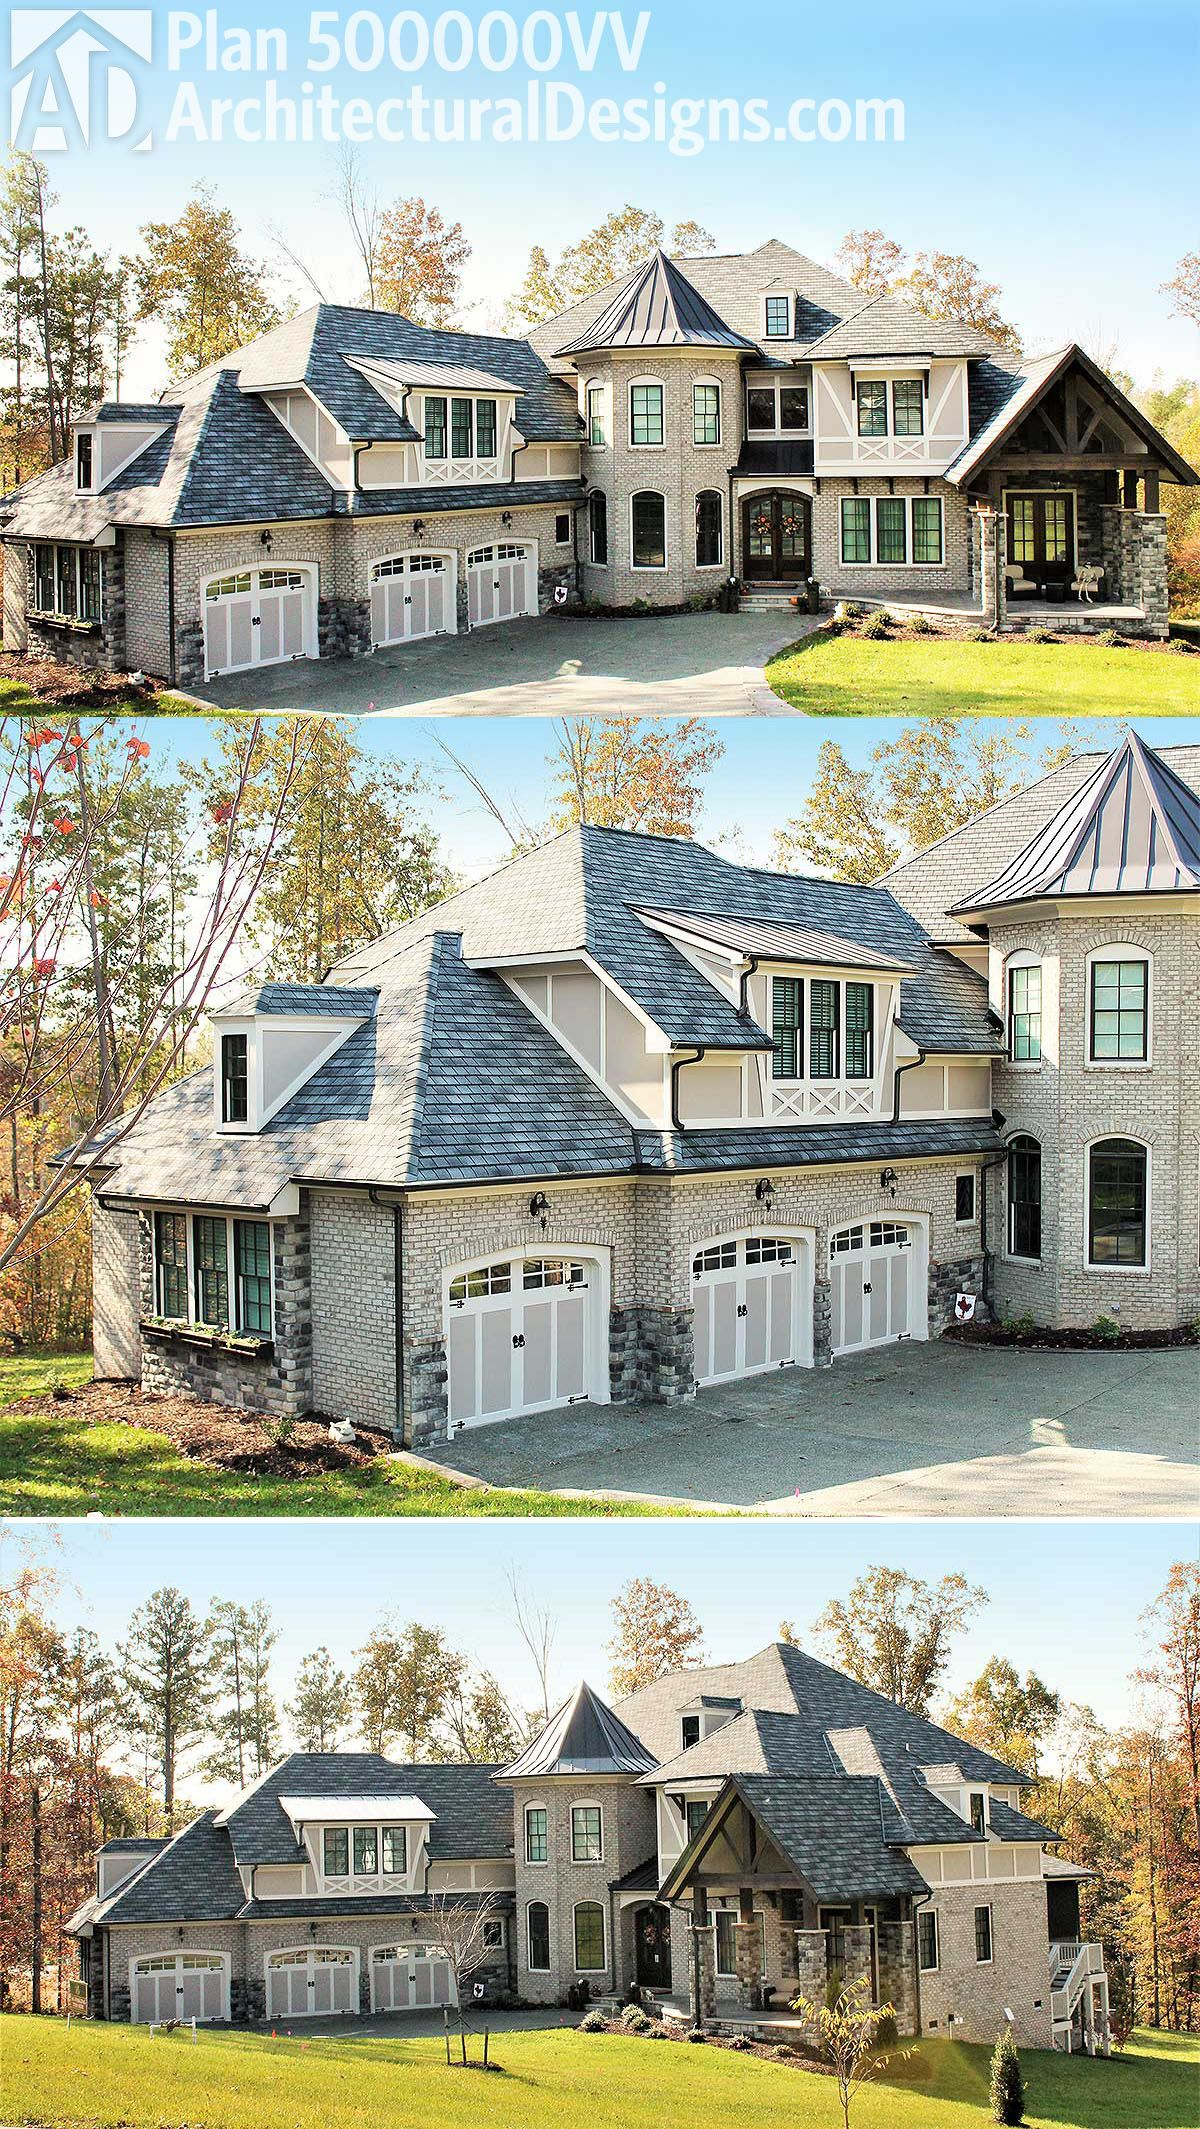 Architectural Design 4 Bed Luxury House Plan 500000vv